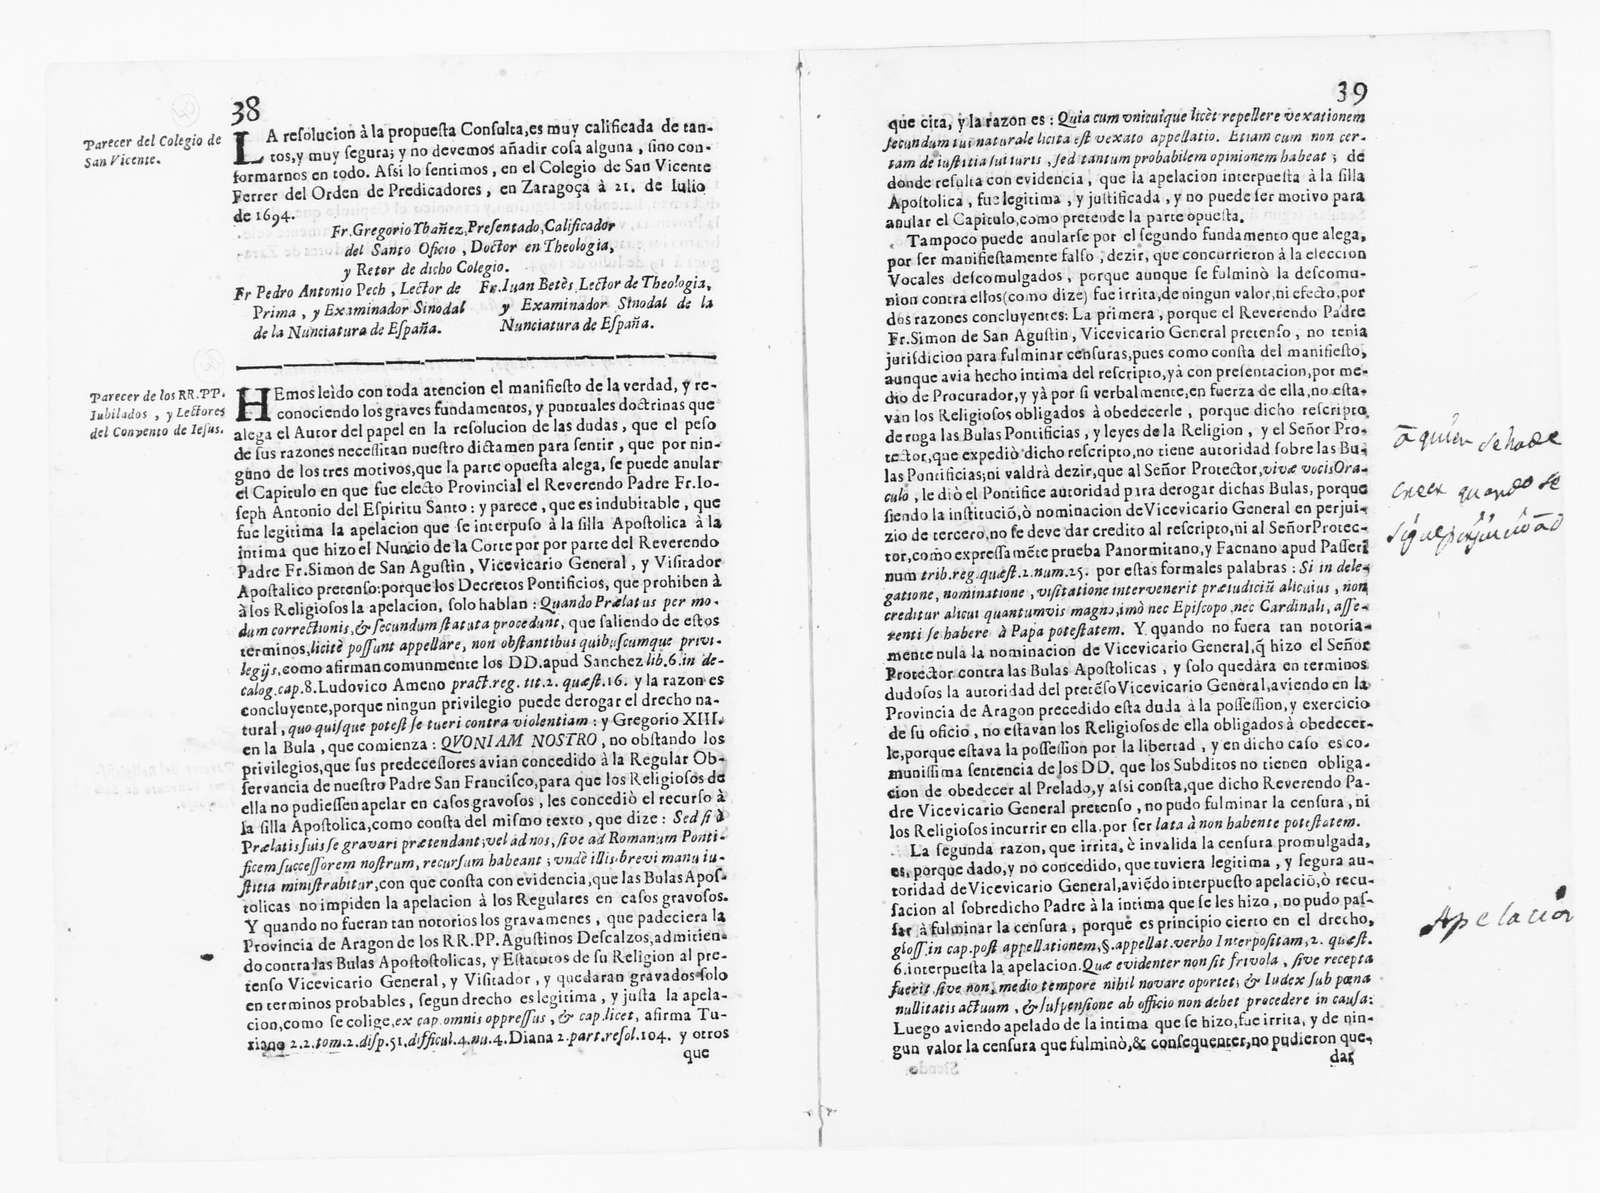 Opinion issued by Friar Gregorio Ibañez and others of the School of San Vicente, concerning the appointment of José Antonio del Espíritu Santo as General Vice-Vicar of Spain and the American Indies of the religious order of San Agustín made by the Cardinal of said religious order of San Agustín. July 21,1694